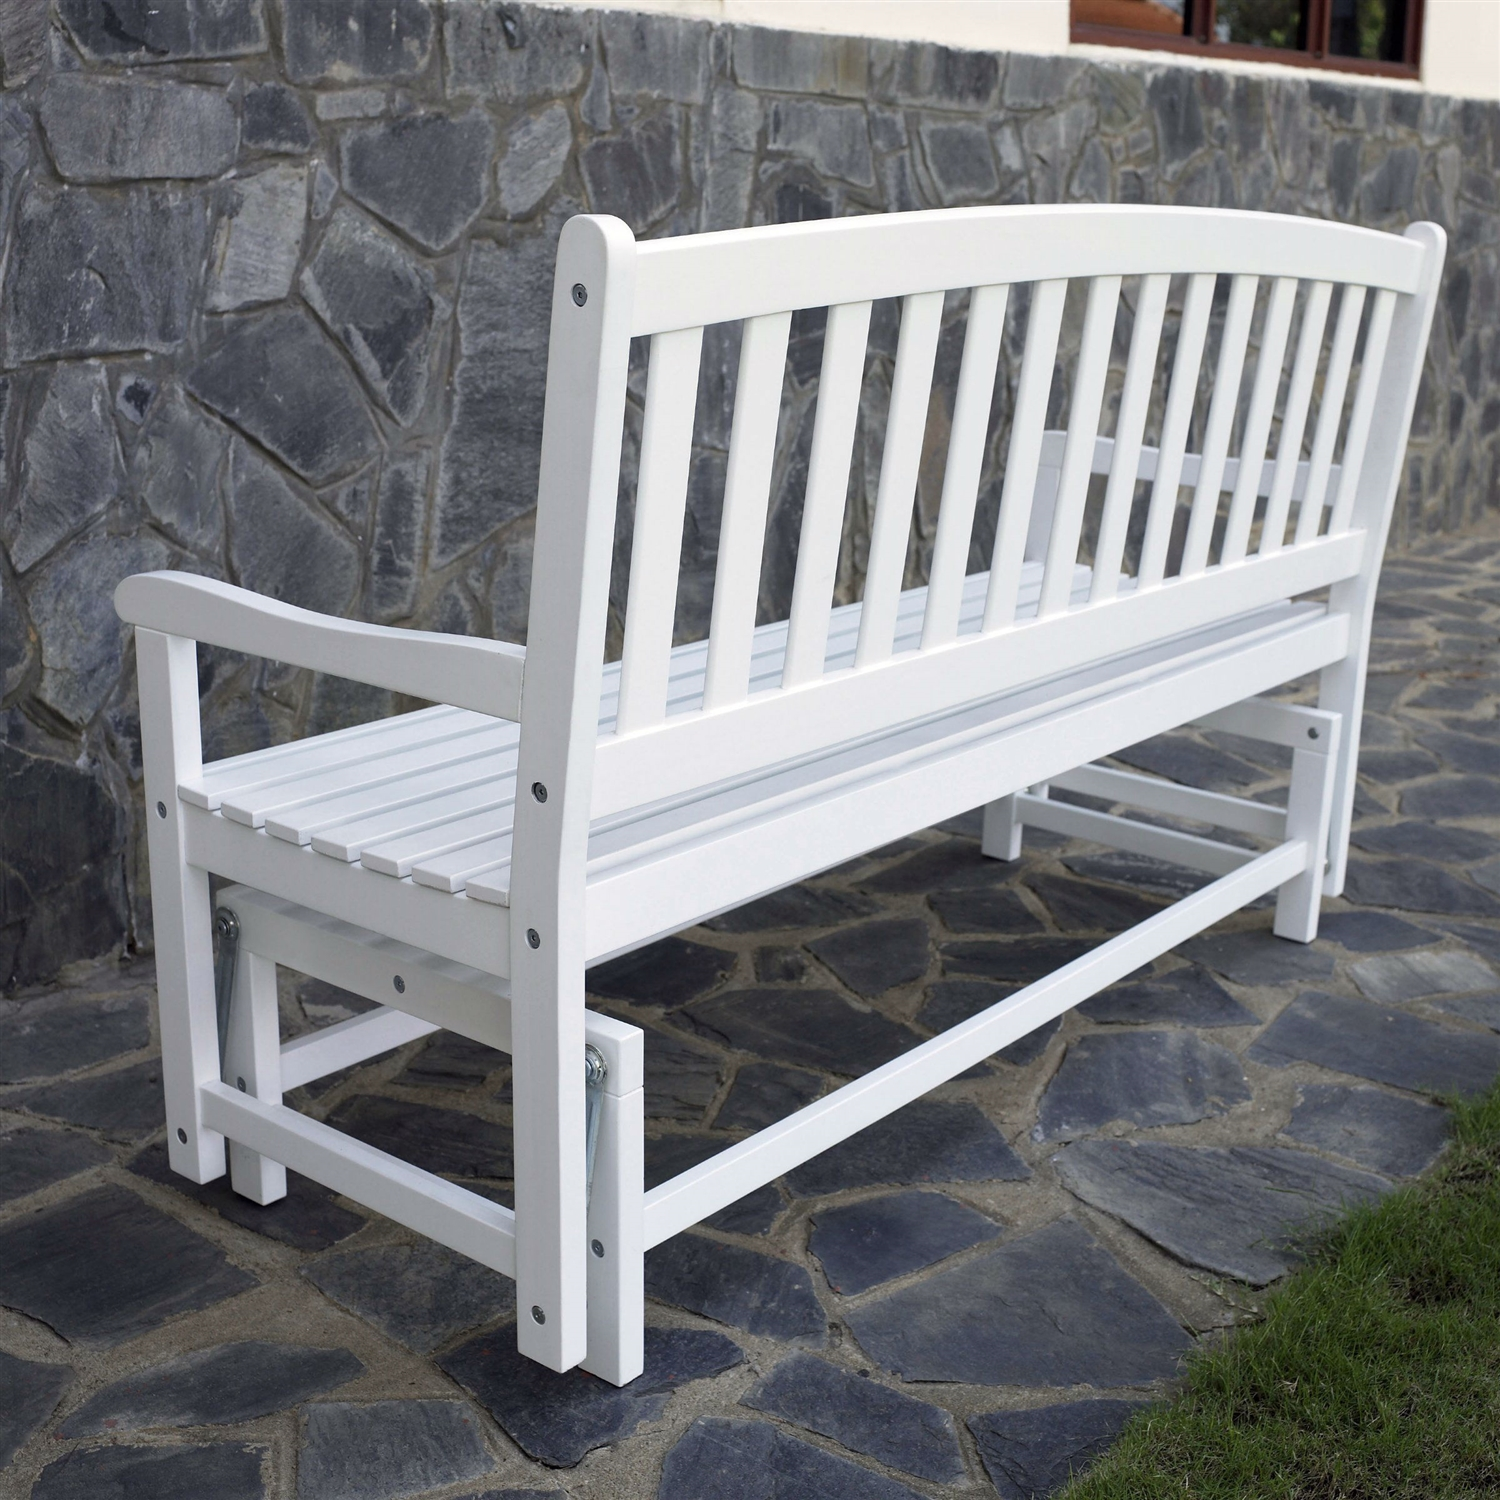 loveseat htm white in chair outdoor wood p bench finish price retail patio ft glider